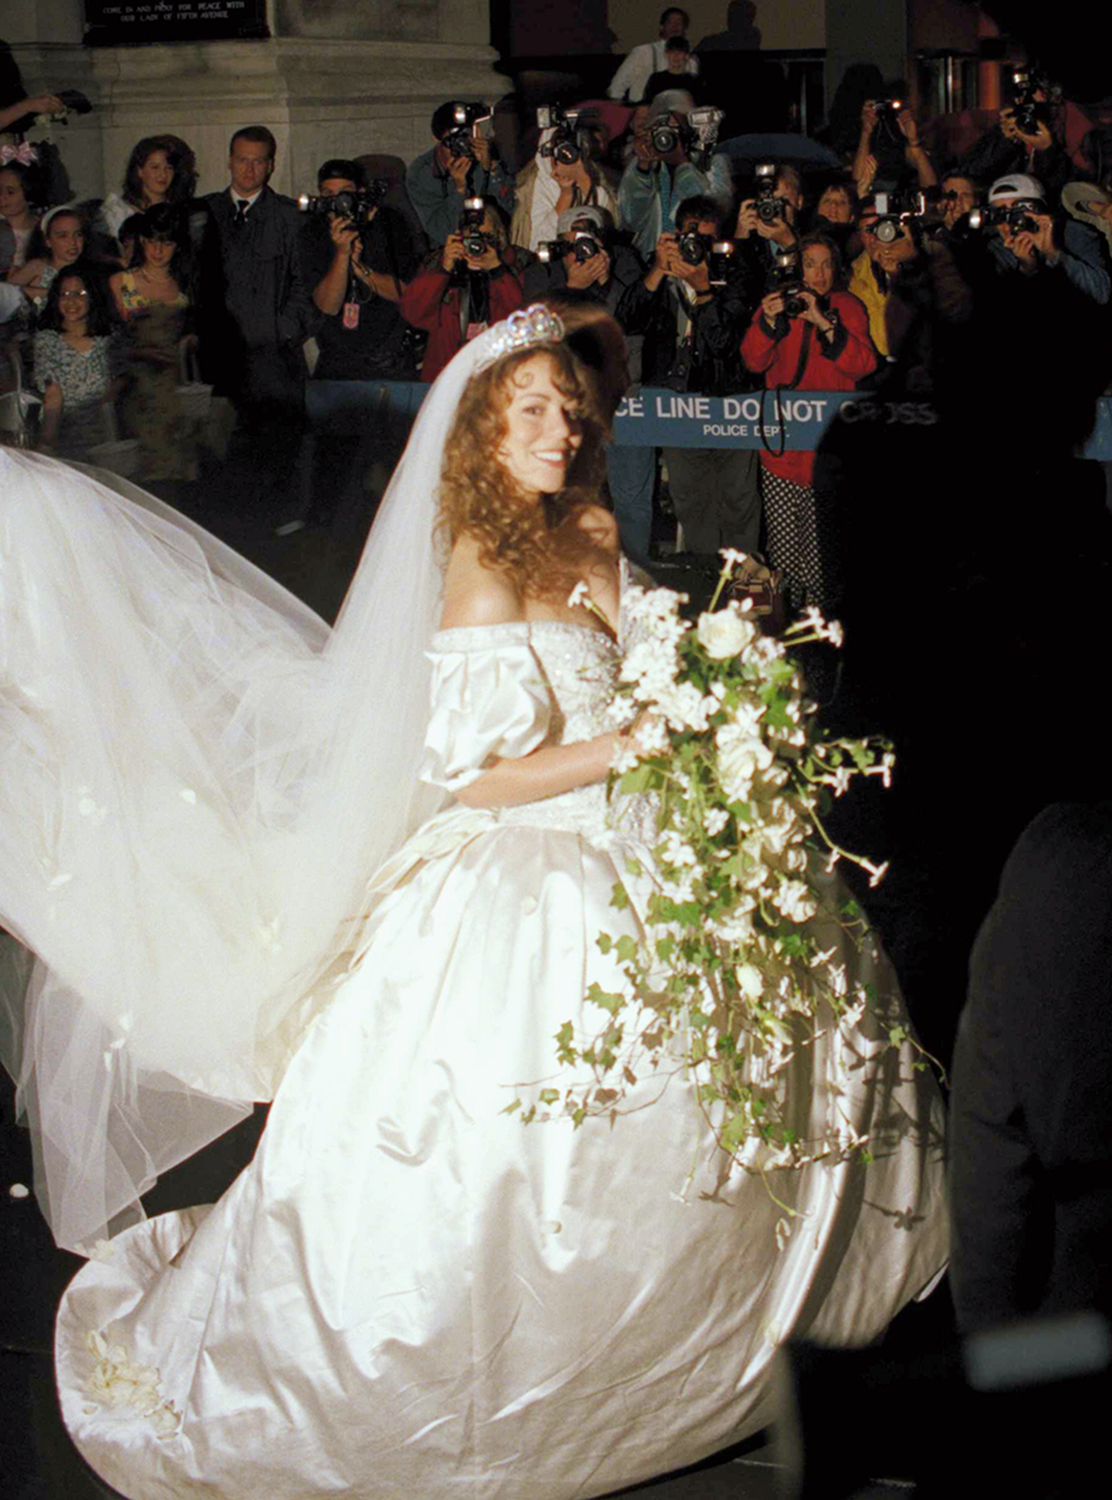 Here comes the bride! Famous wedding gowns